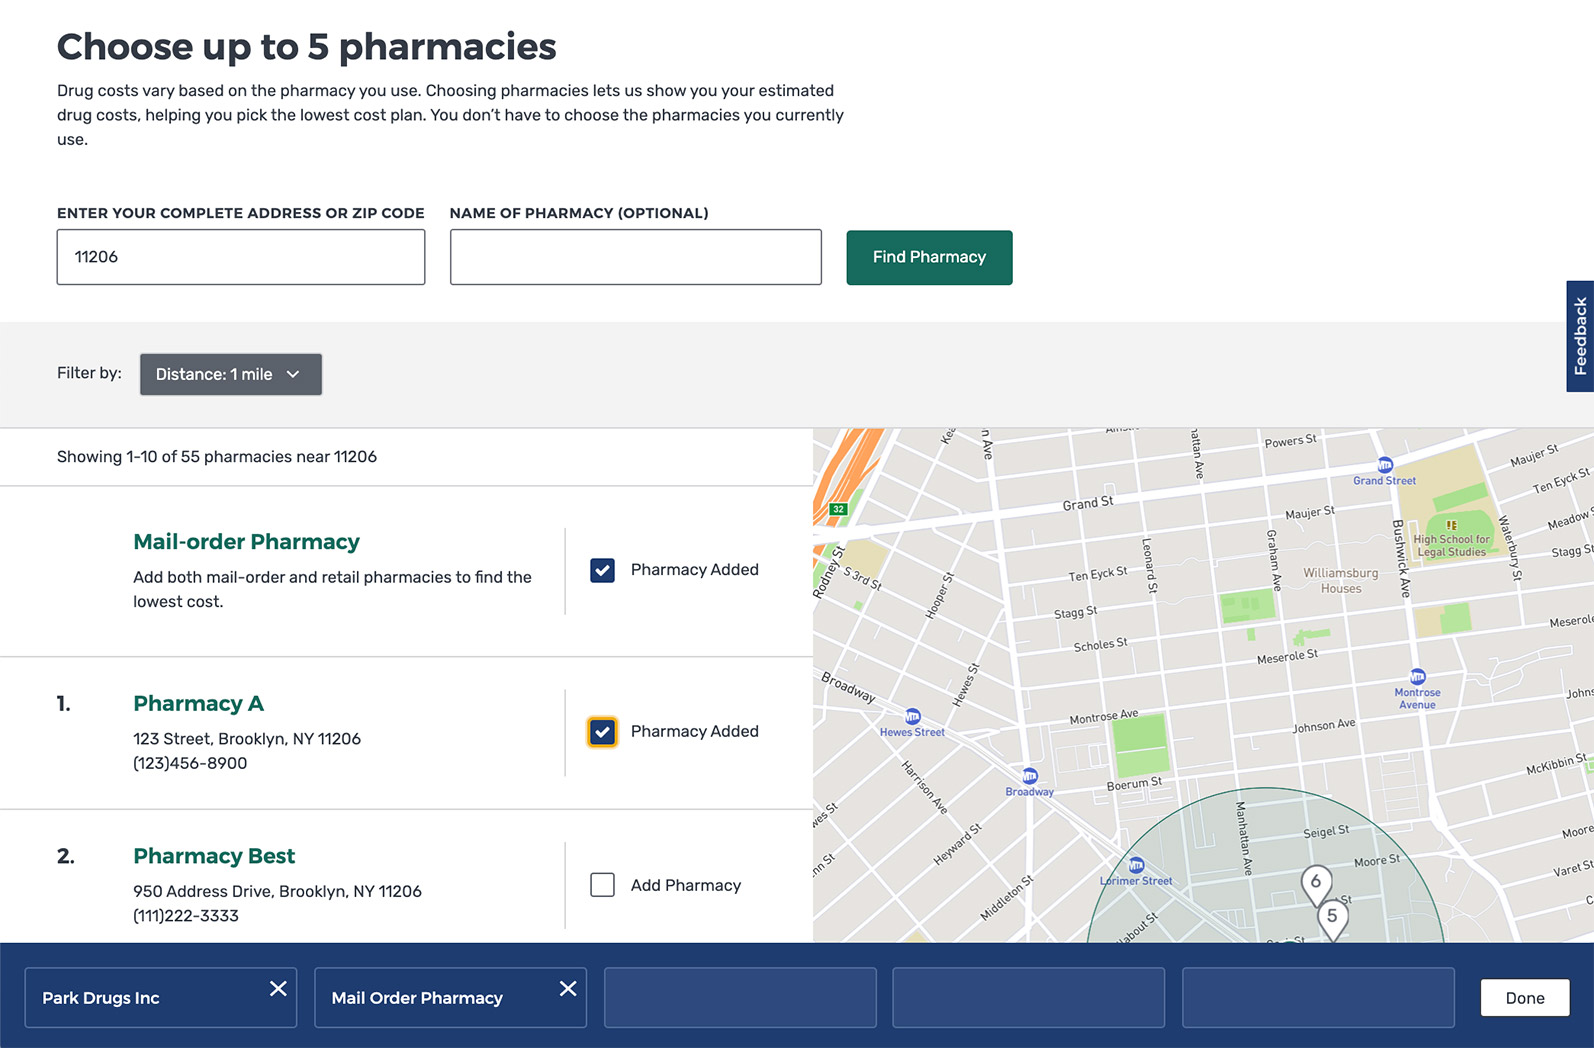 Screenshot showing the page to choose a pharmacy, with pharmacy names, addresses, and a map.